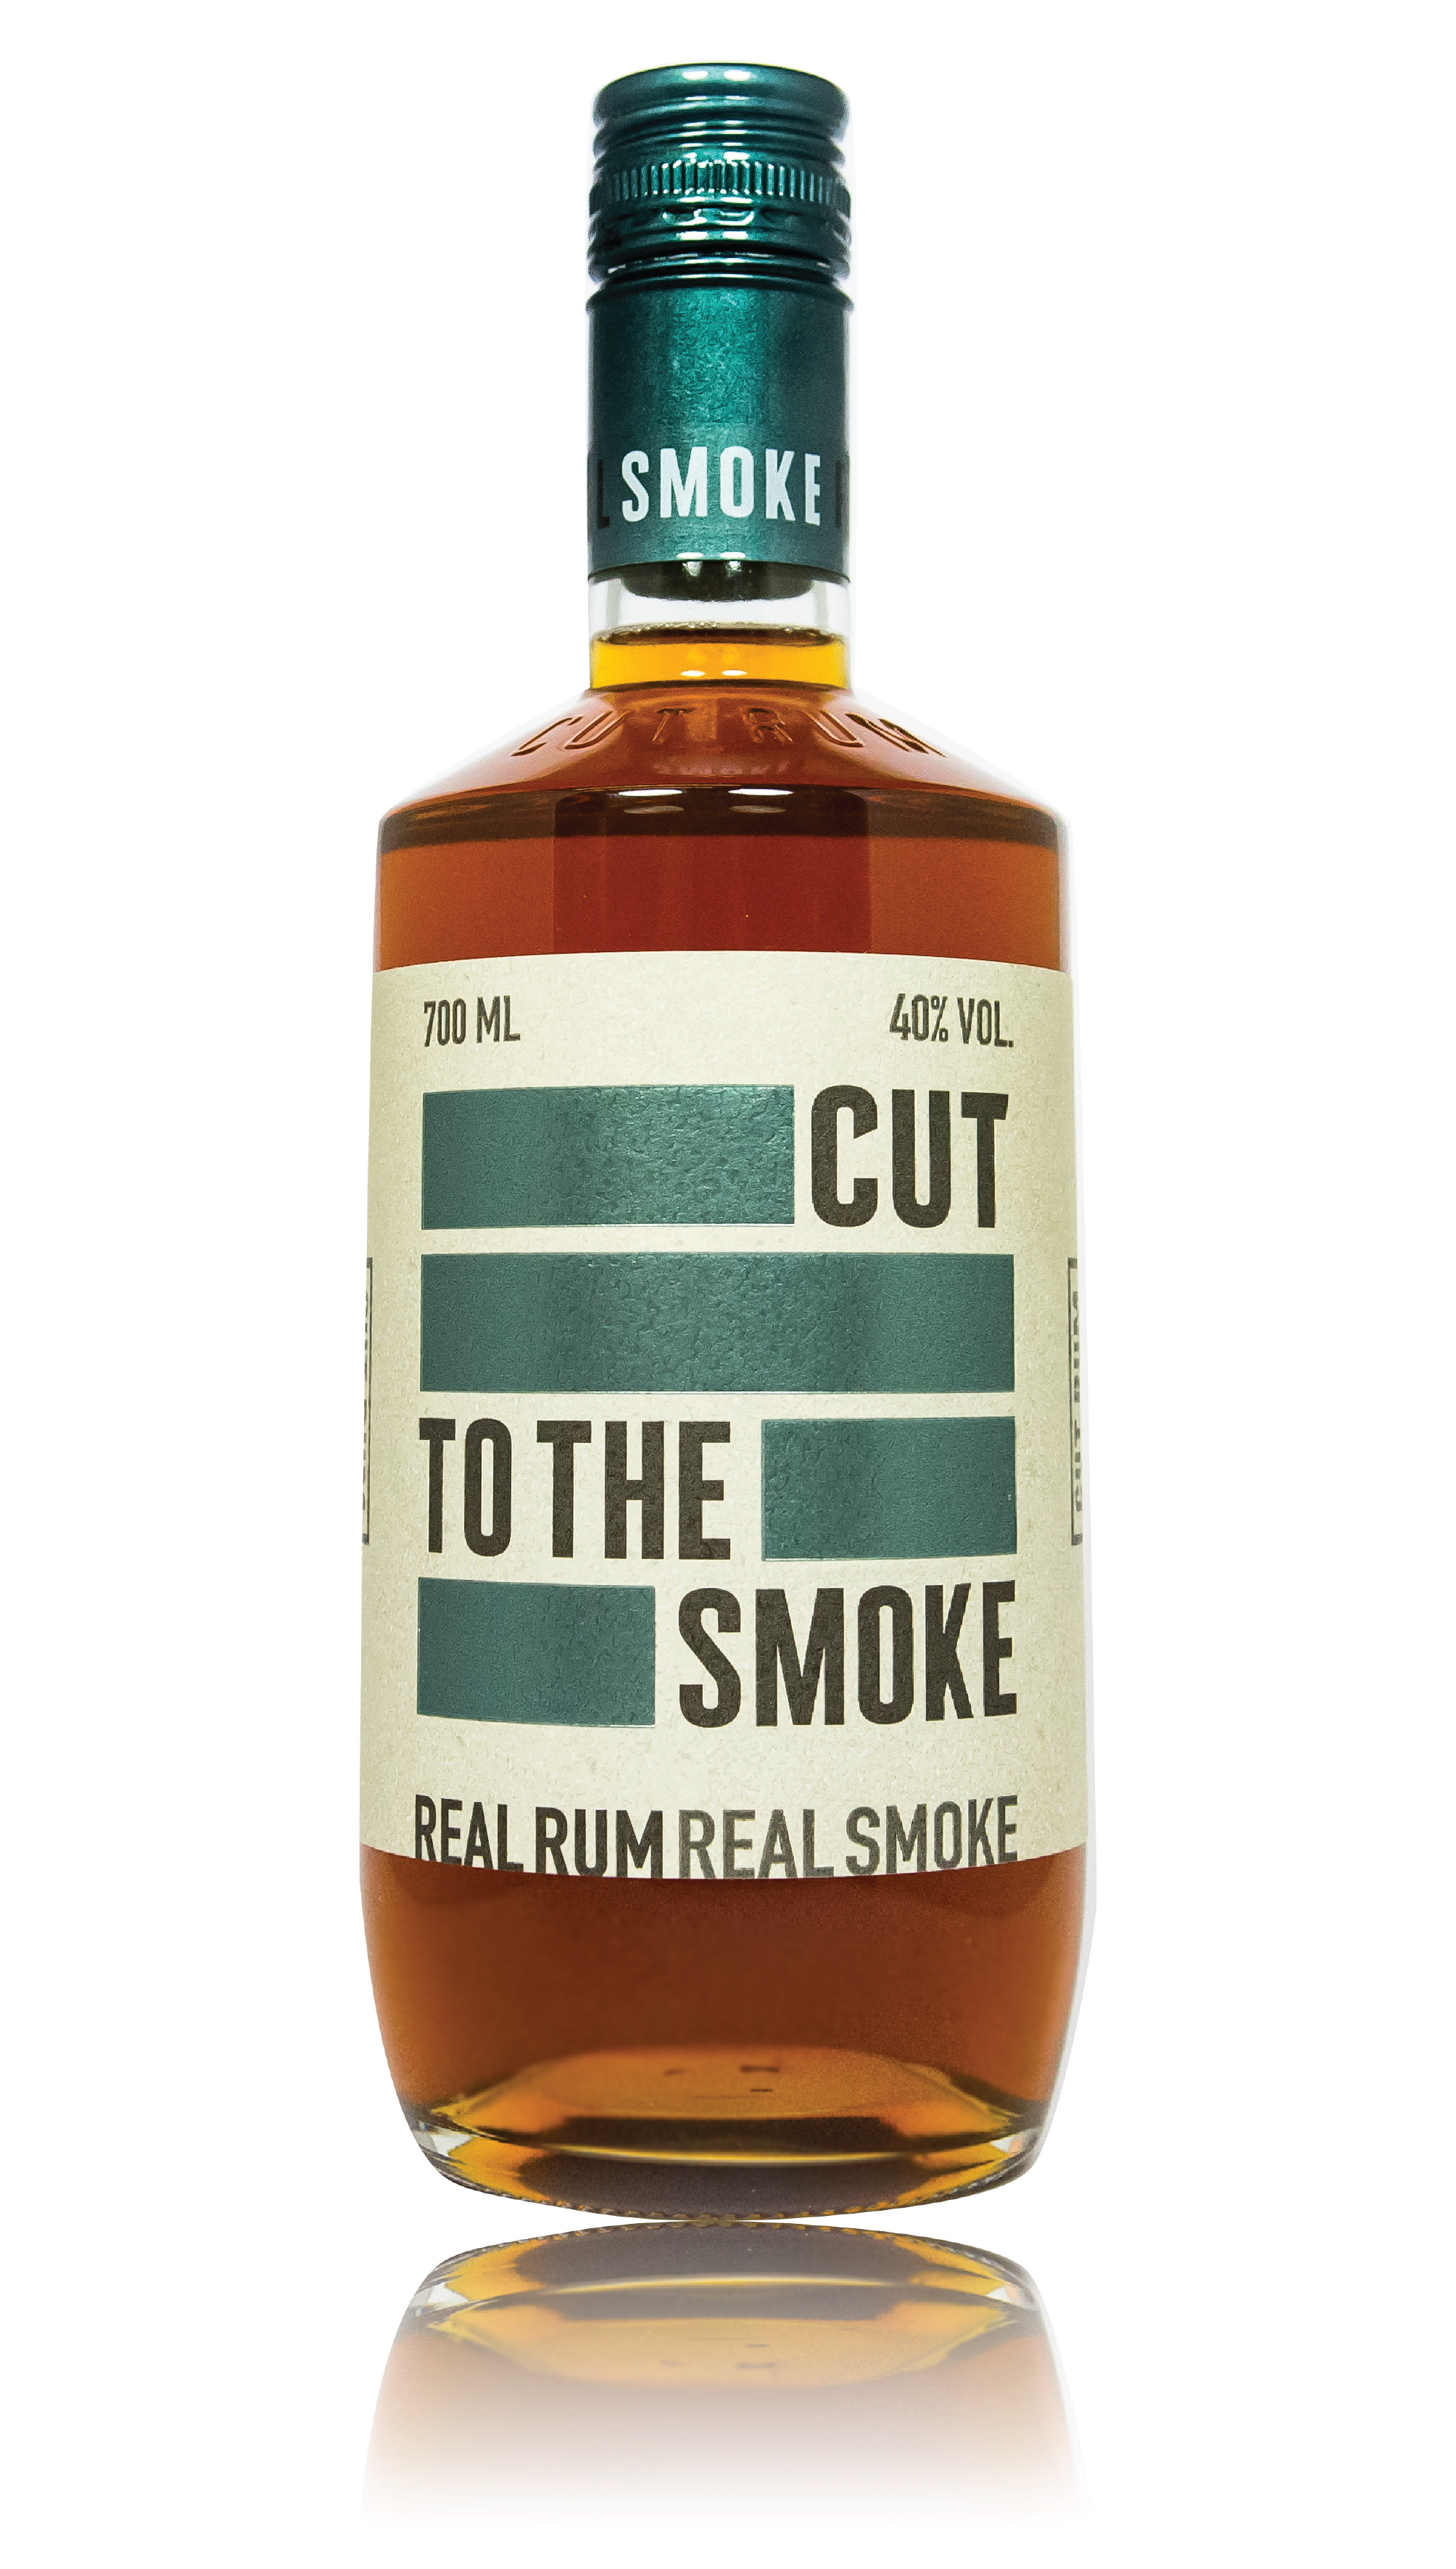 CUT SMOKED RUM - 40% ABVTHE FIRST SMOKED RUM IN THE UK. INFUSED WITH ARABICA COFFEE BEANS, SMOKED WITH  BURNT WOOD CHIPS AND LEFT TO REST IN  OAK BARRELS. THIS RUM IS ONE OF A KINDON THE NOSECOFFEE █████ COCOA NIB ████  █████ OAKED VANILLA ███ PIPE TOBACCO ████████  ON THE TASTE █████ BROWN SUGAR ██████ LEATHER ██████ CHARRED WOOD ███████ MATCHSTICK SMOKE